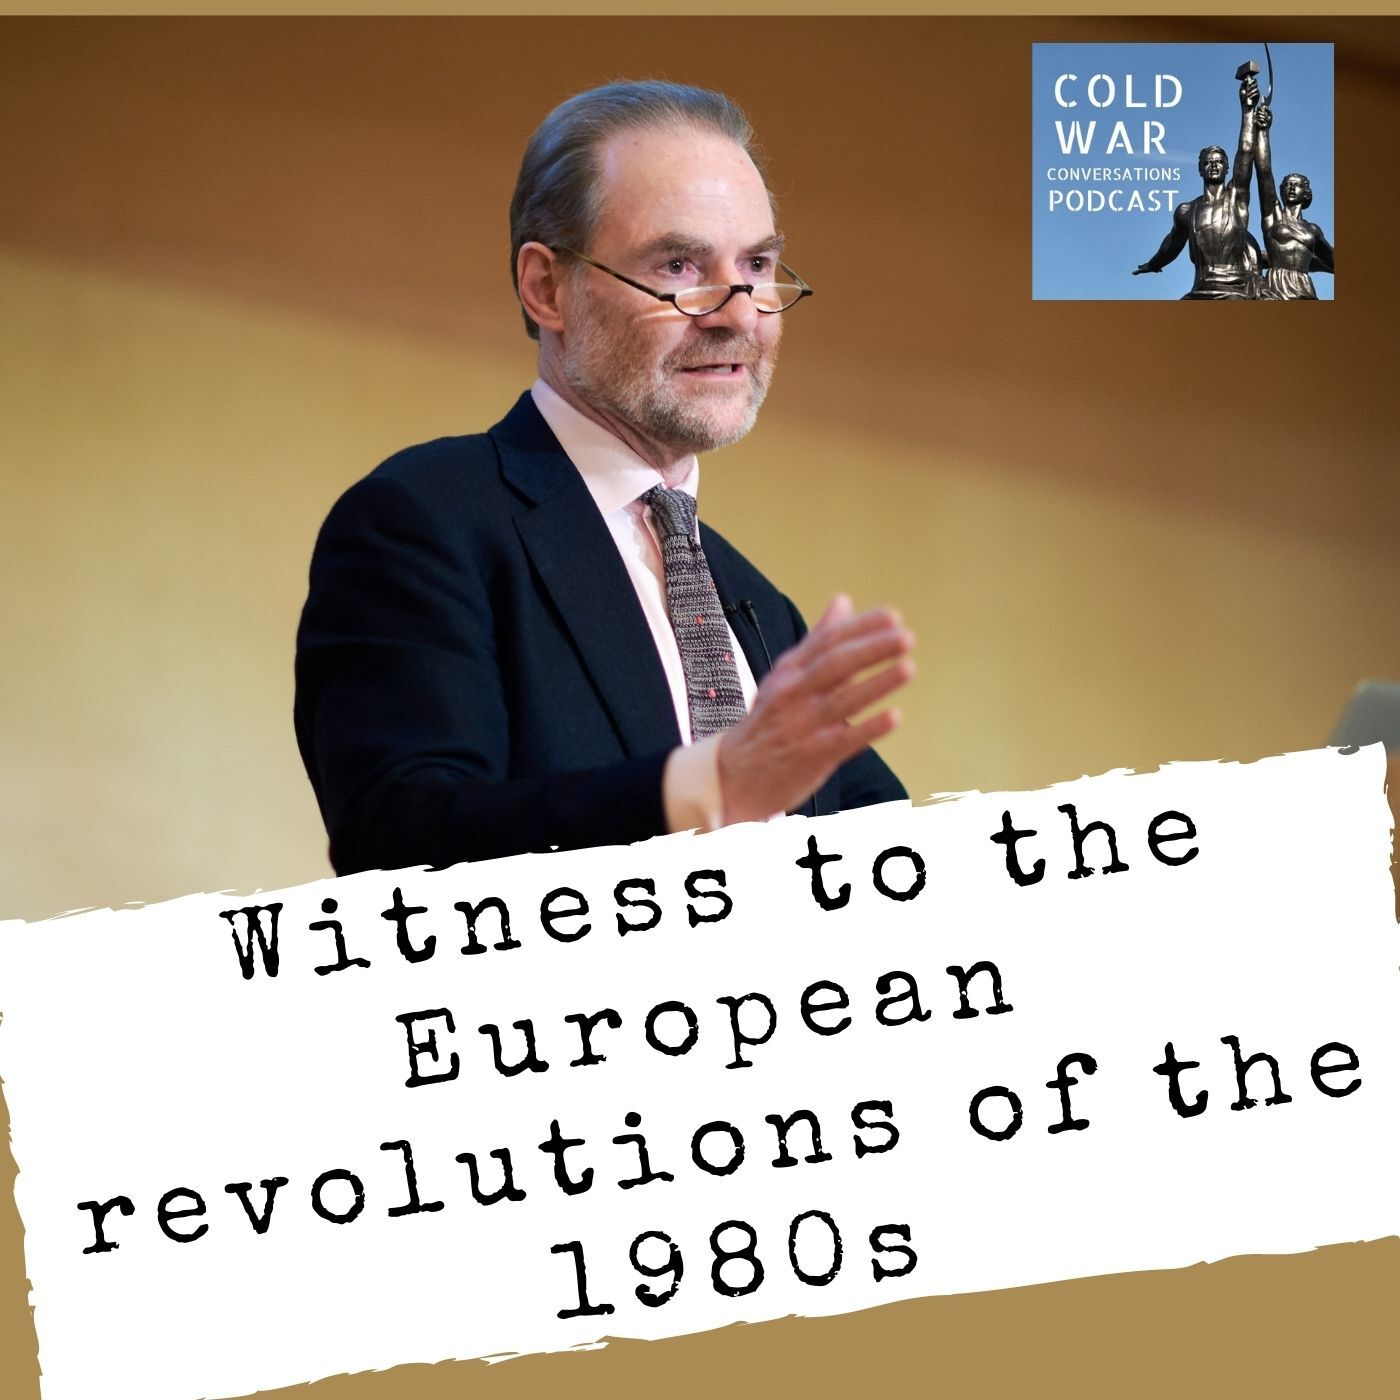 Witness to the Eastern Bloc revolutions of the 1980s with Professor Timothy Garton Ash (158)